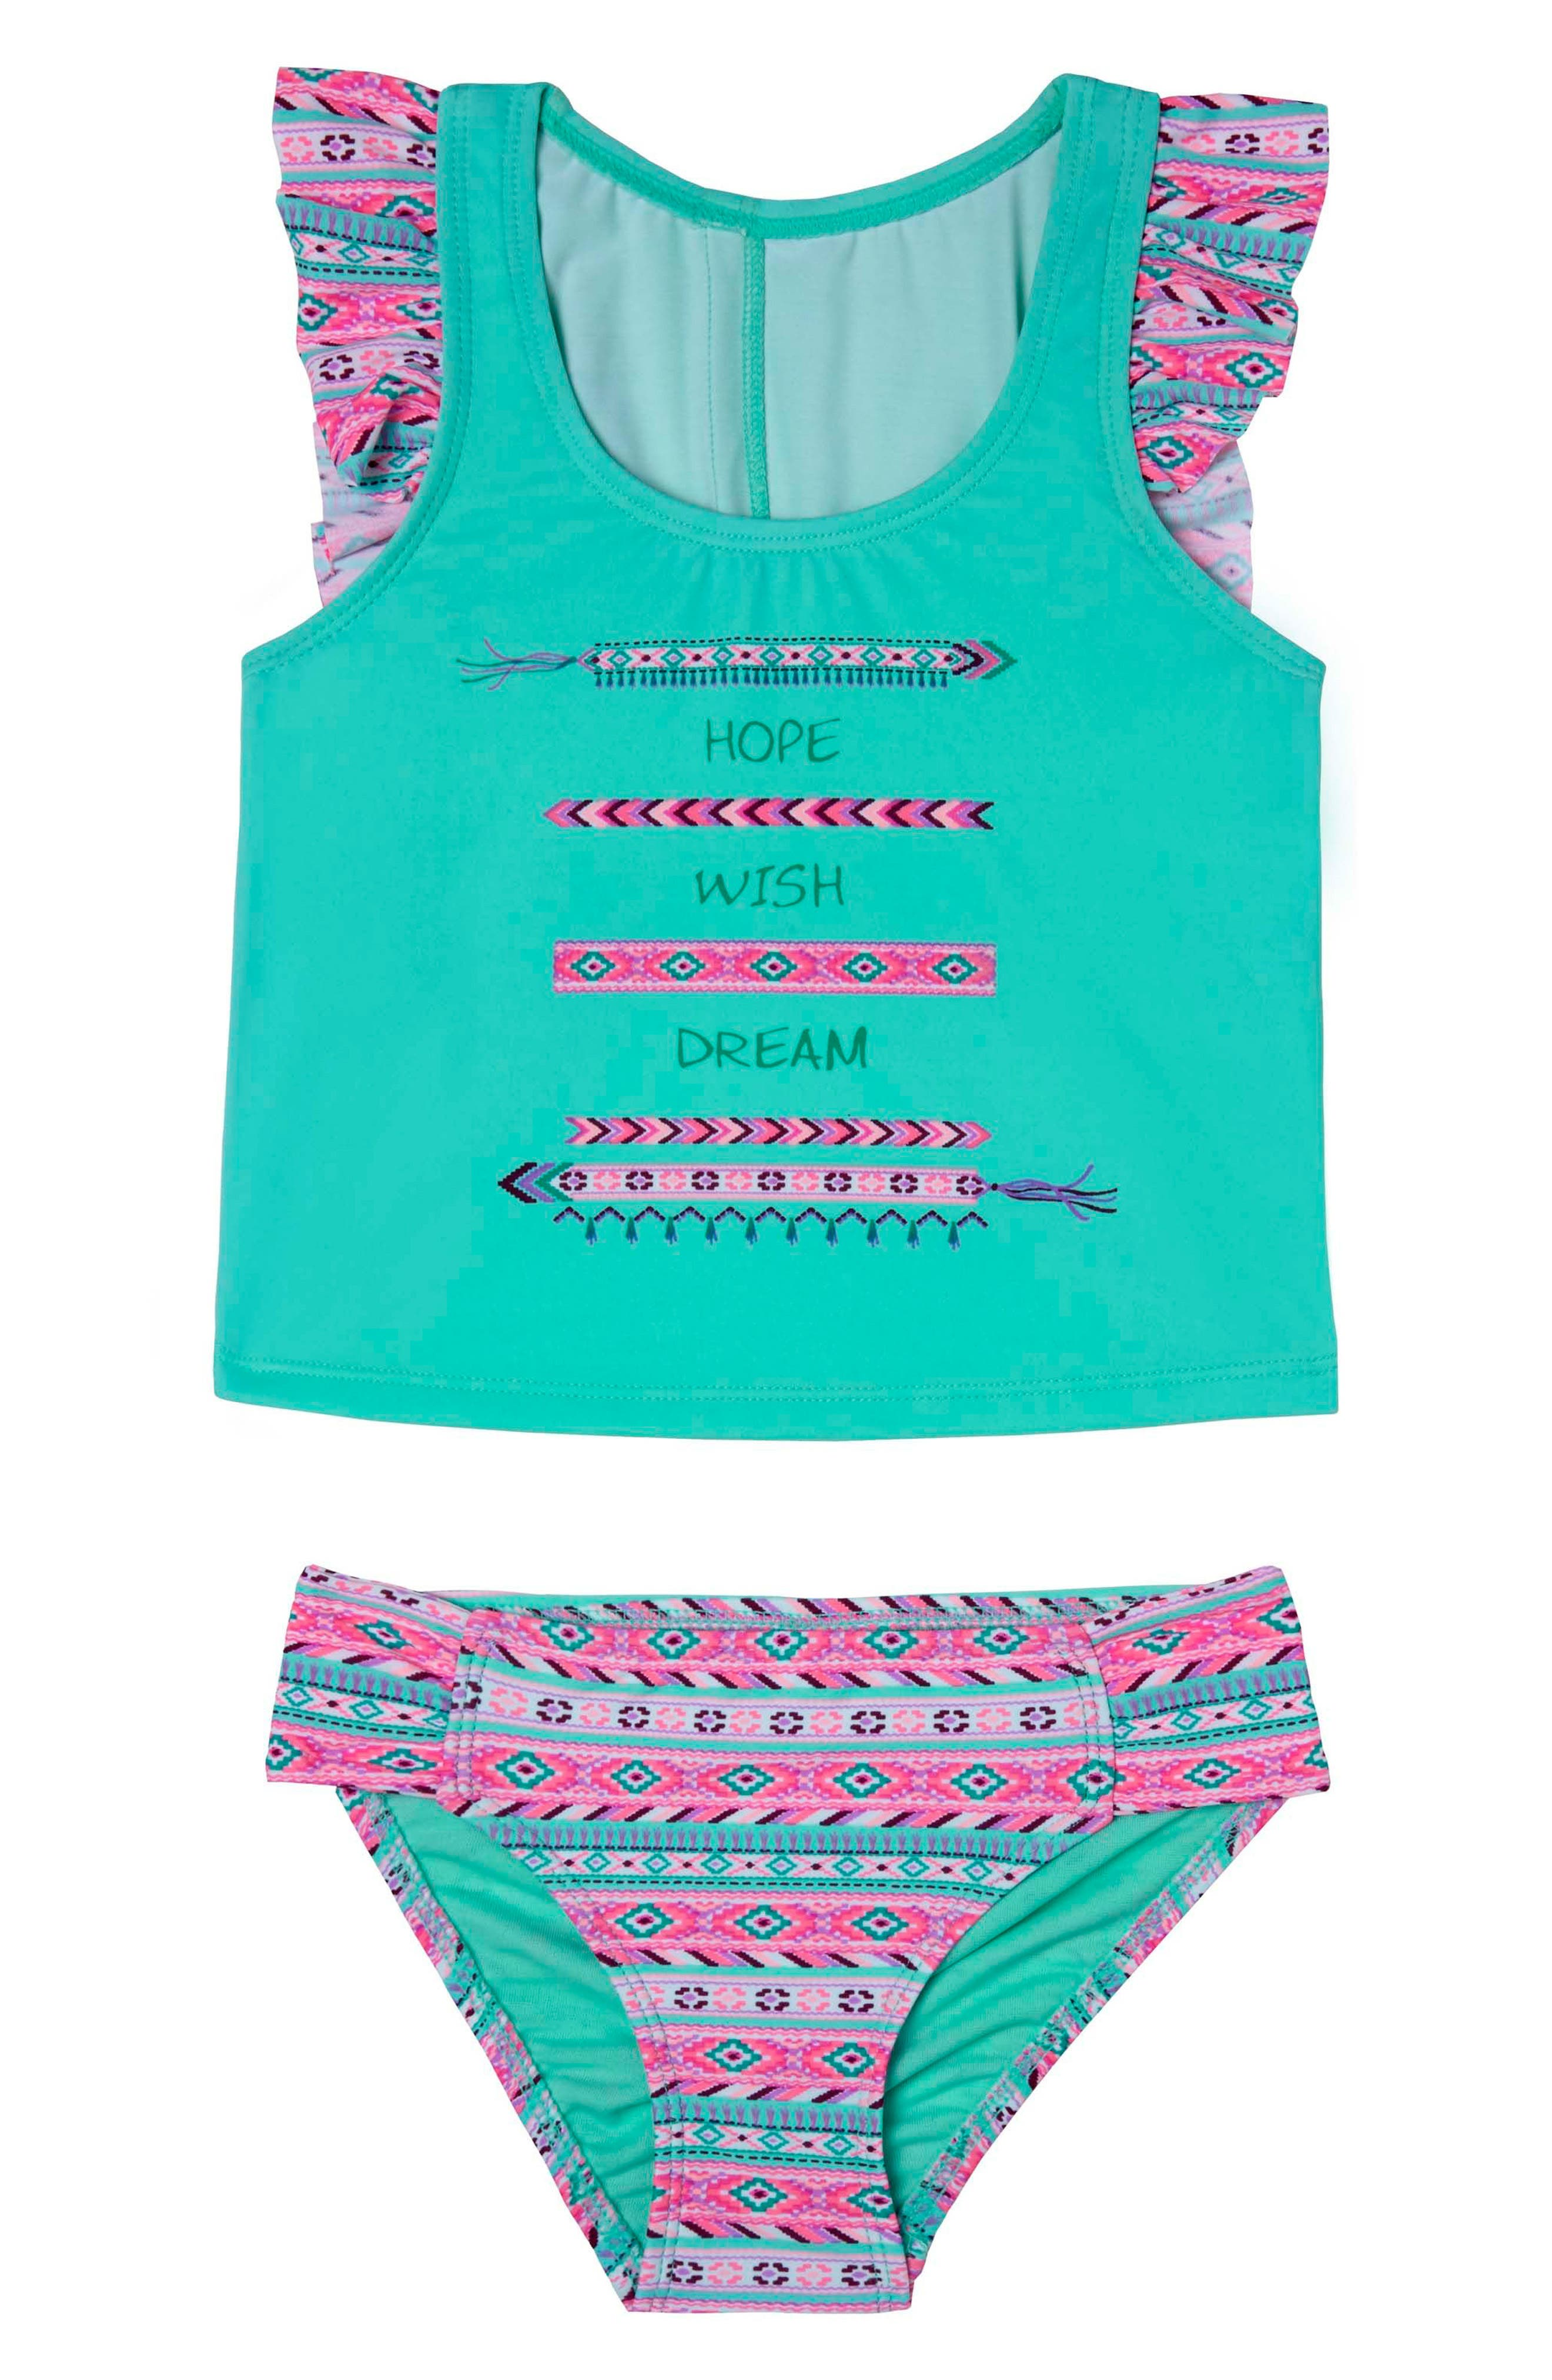 BFF - Hope, Wish & Dream Two-Piece Tankini Swimsuit,                             Main thumbnail 1, color,                             Green